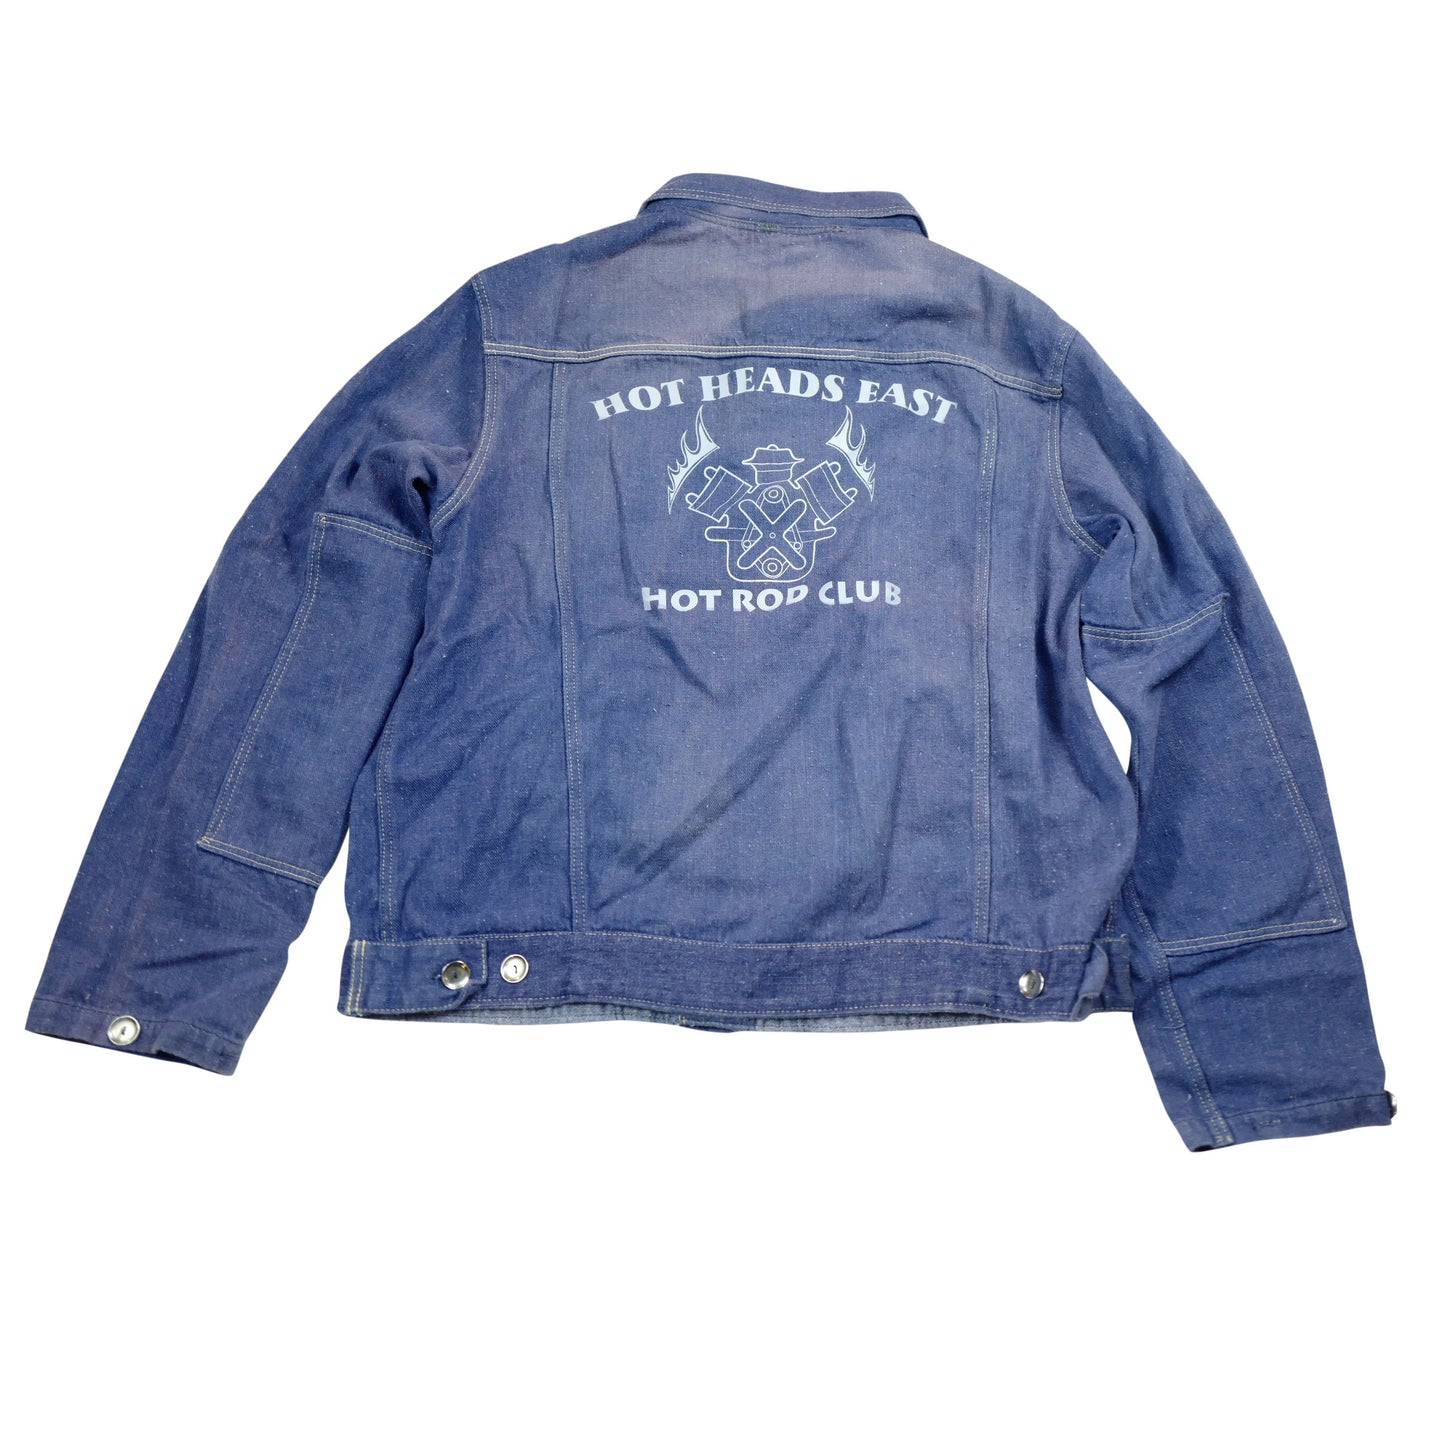 Hot Heads East Hot Rod Club Denim Jacket